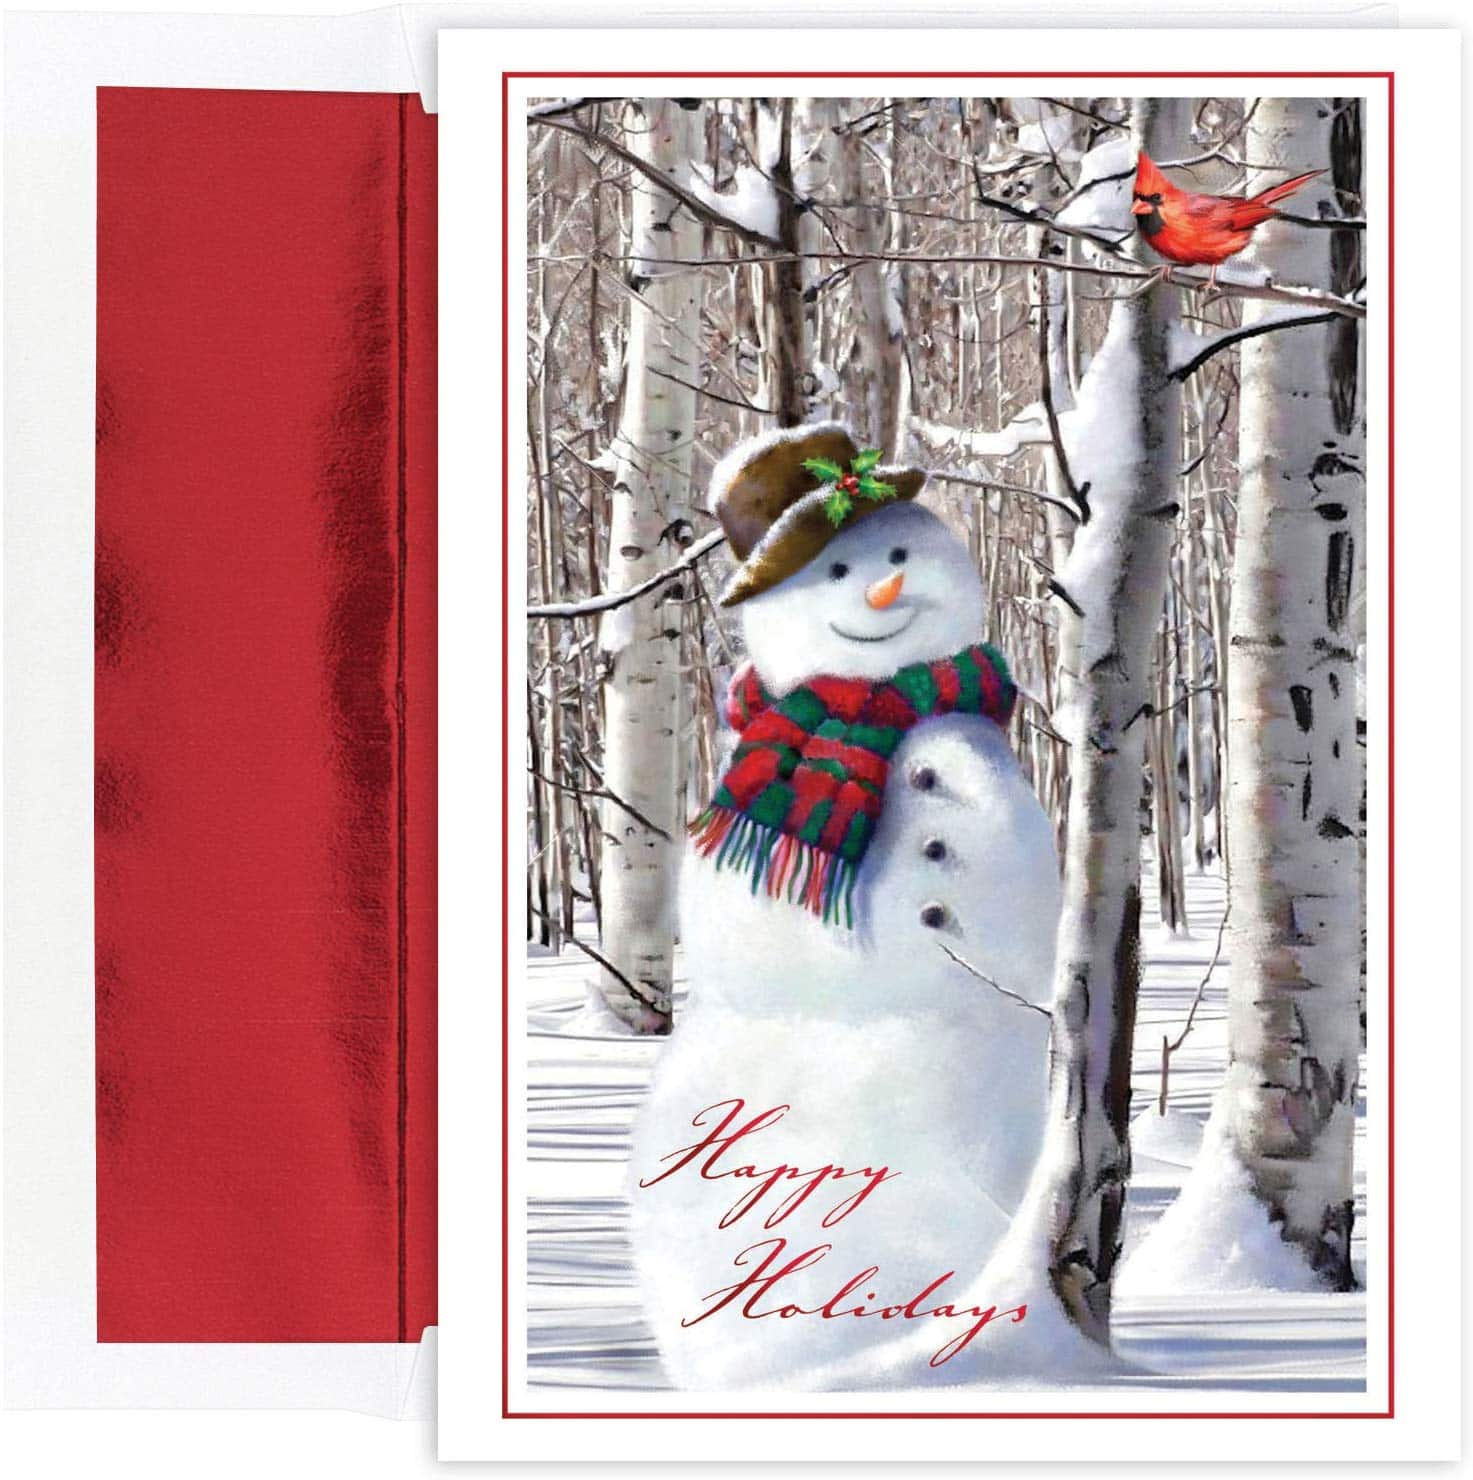 18 Deluxe Cards - Masterpiece Studios (Snowman with Cardinal) w/Foiled Lined Envelopes (5x7) $4.75 - Amazon